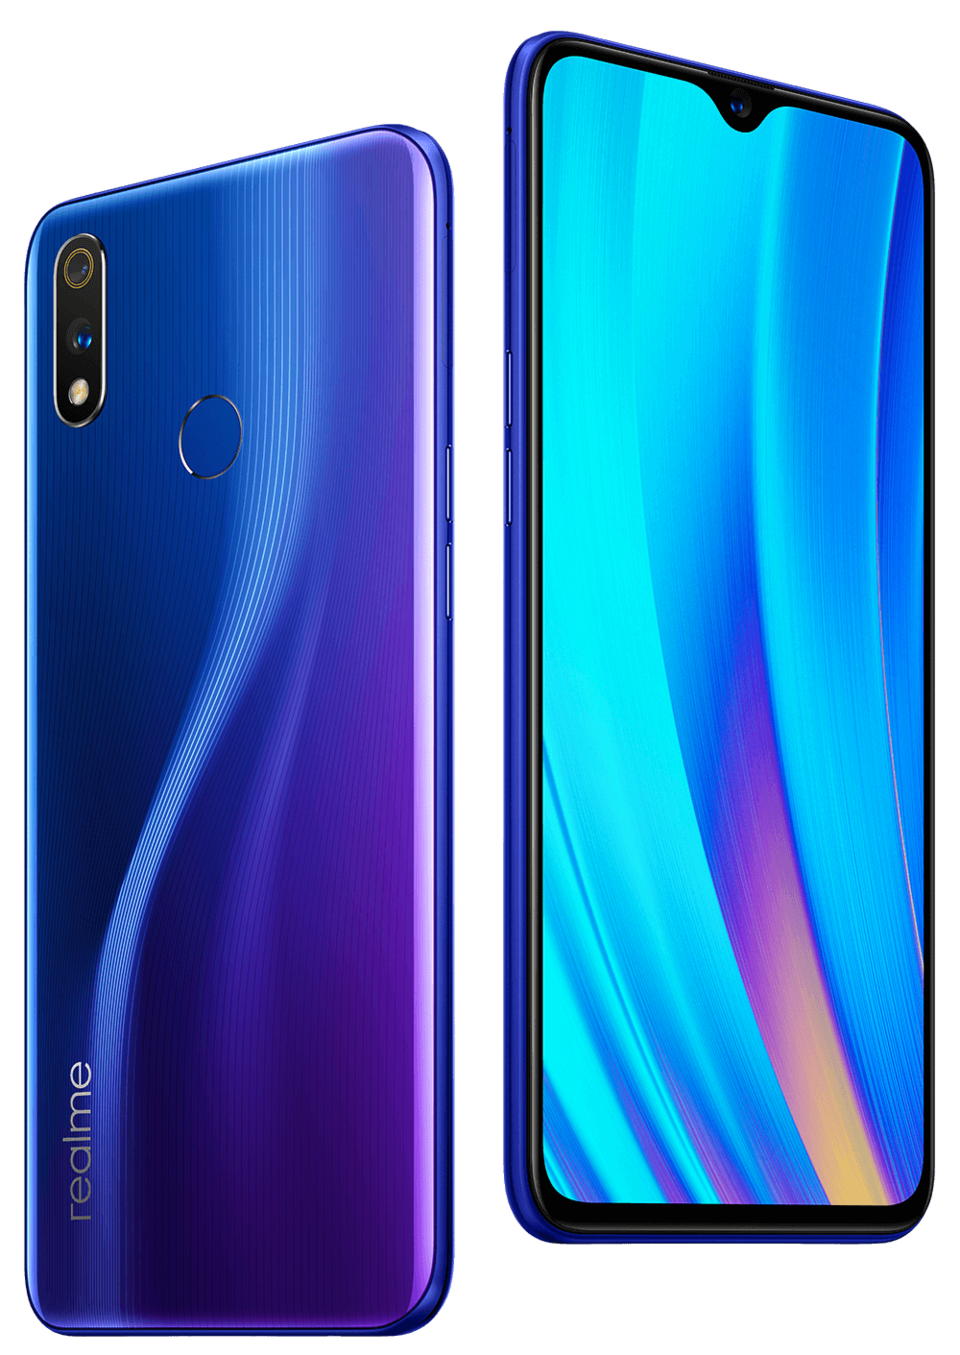 Realme 3 Pro Best Mobile Phones under 15000 in India